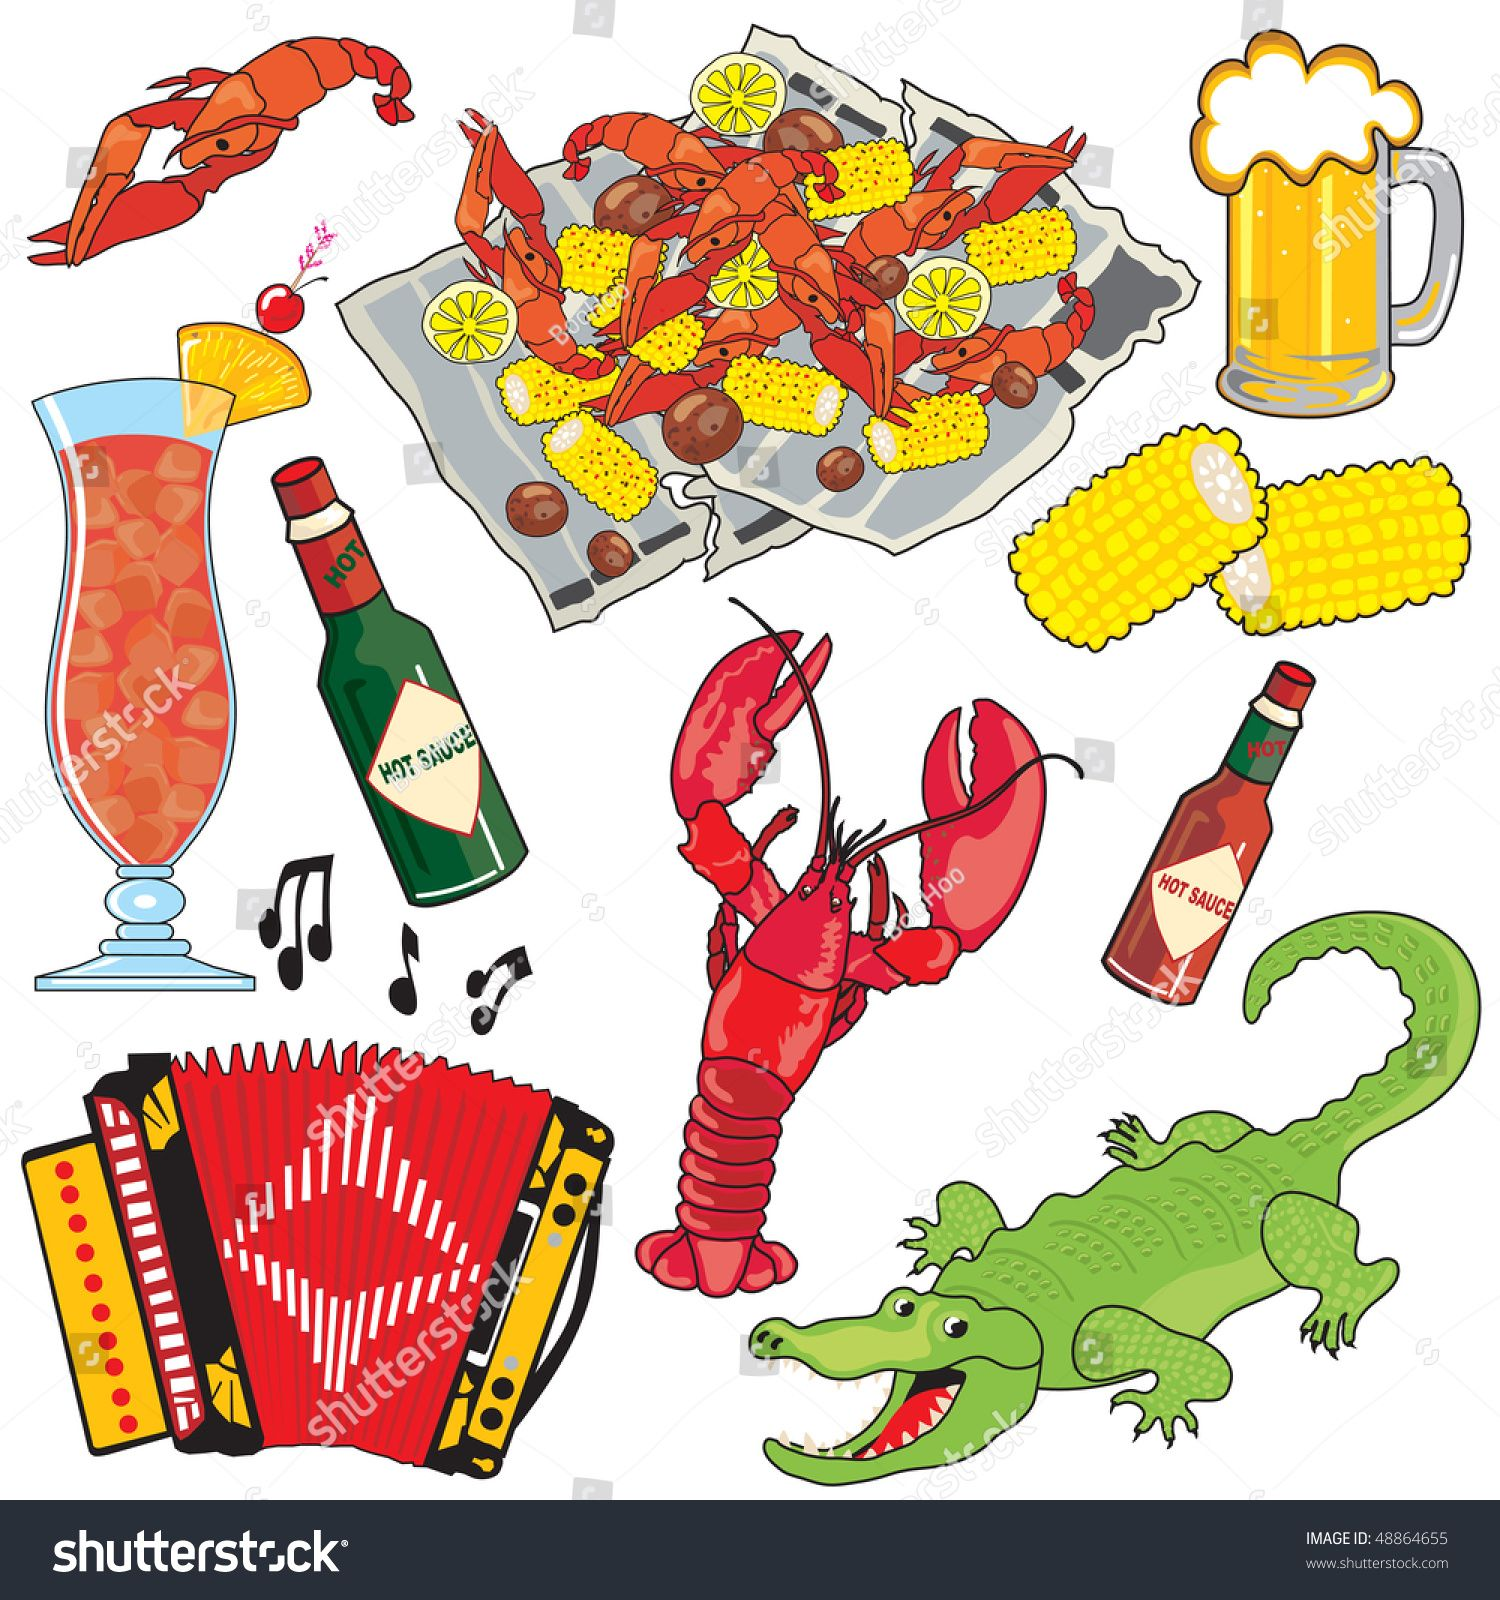 Alligator clipart cajun food Clip food Clip Art Louisiana